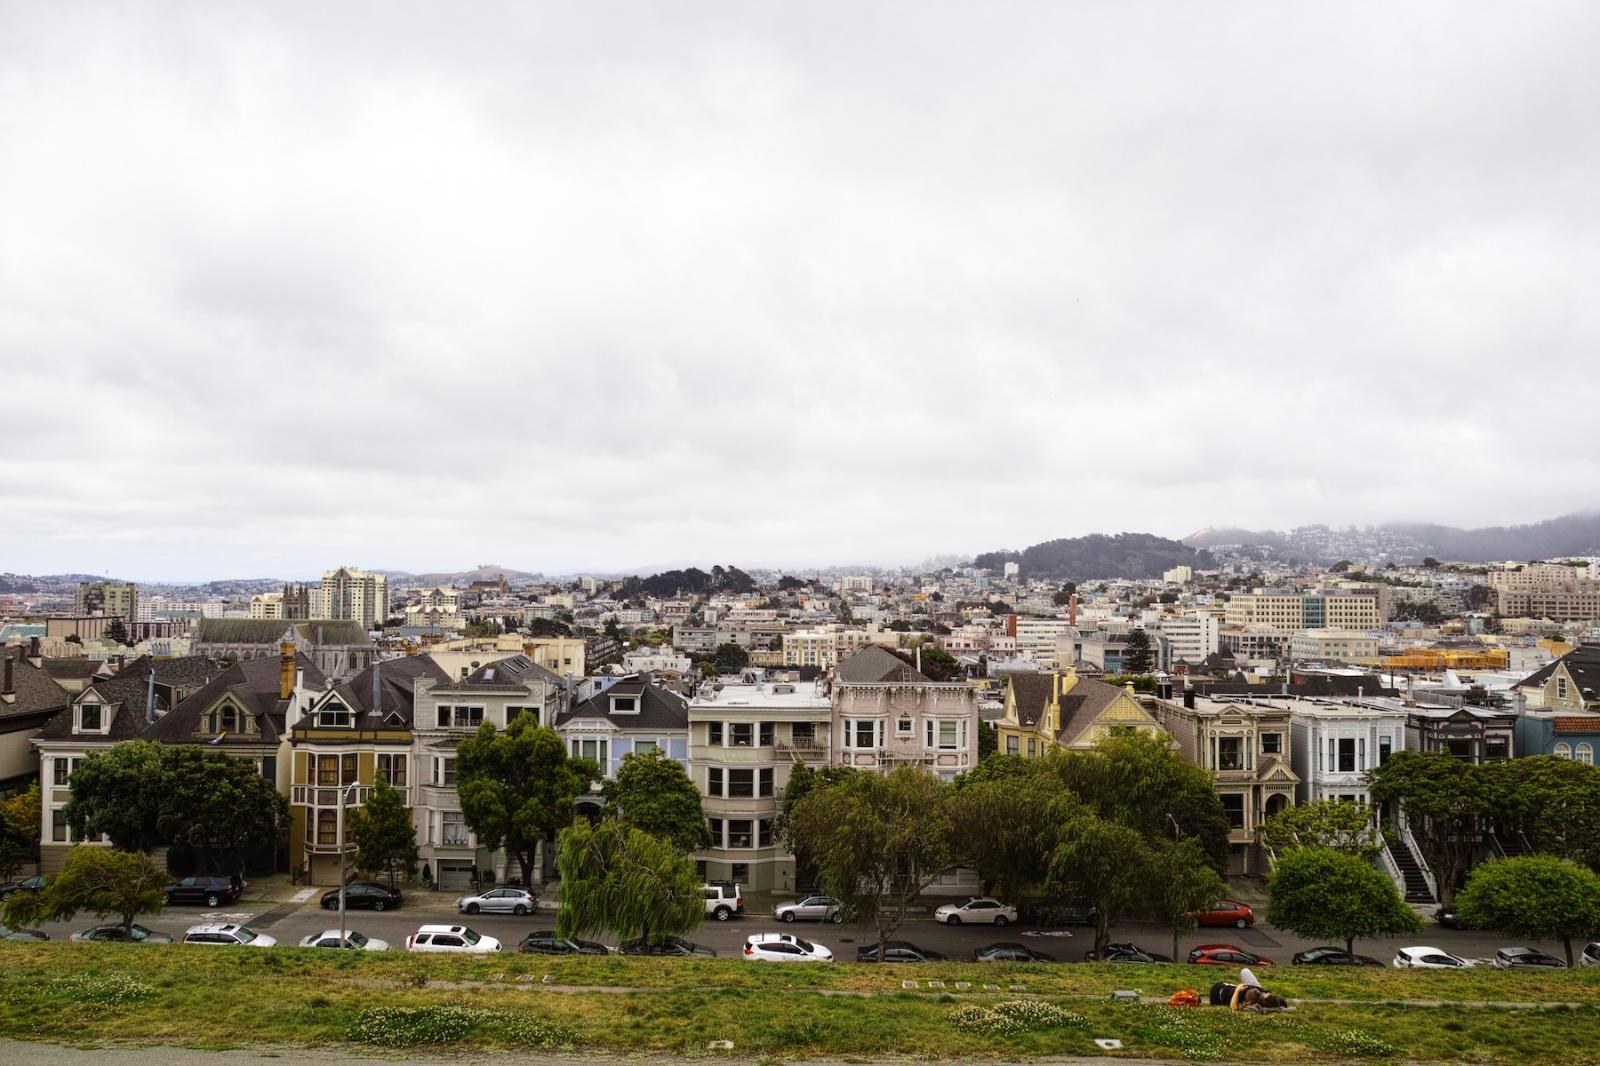 Photography image - Loading San_Francisco_Heights_copy.jpg